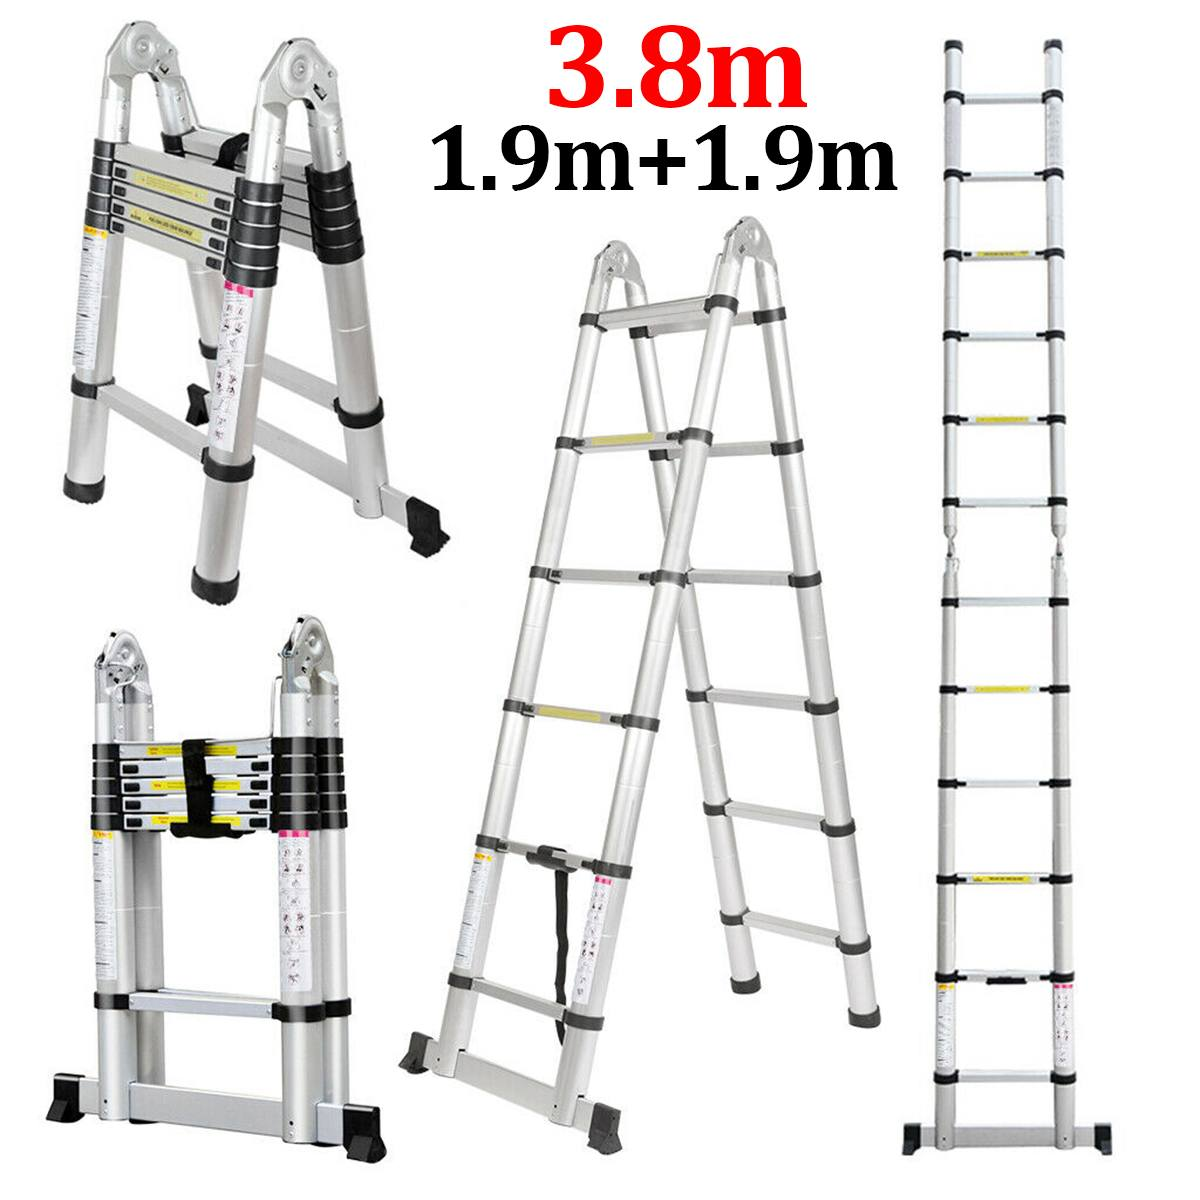 Ladder Telescopic 1.9m+1.9m 12.5FT Folding Ladder Dual-Use Herringbone Ladders Single Extension Alloy Aluminium Tools Home